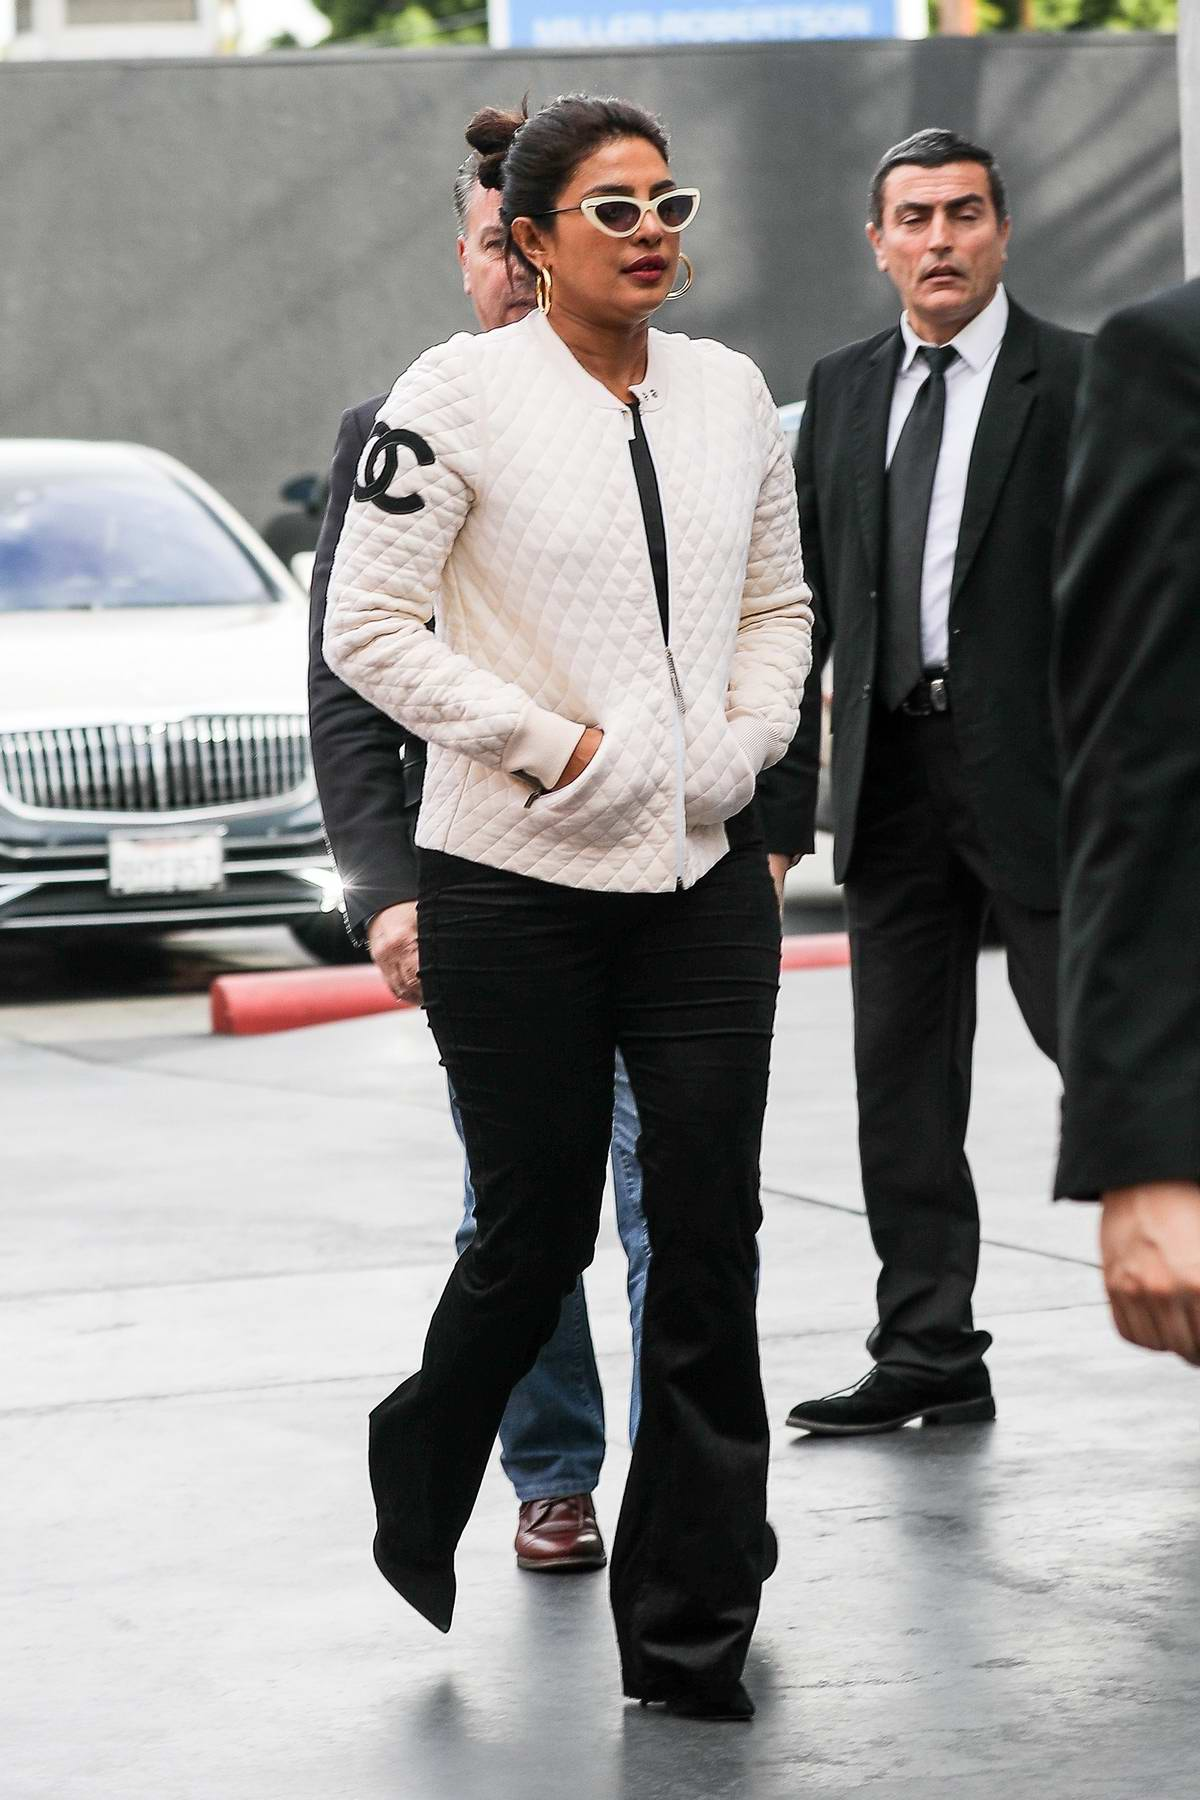 Priyanka Chopra seen wearing white Chanel jacket while out for some shopping at Maxfields in Beverly Hills, California